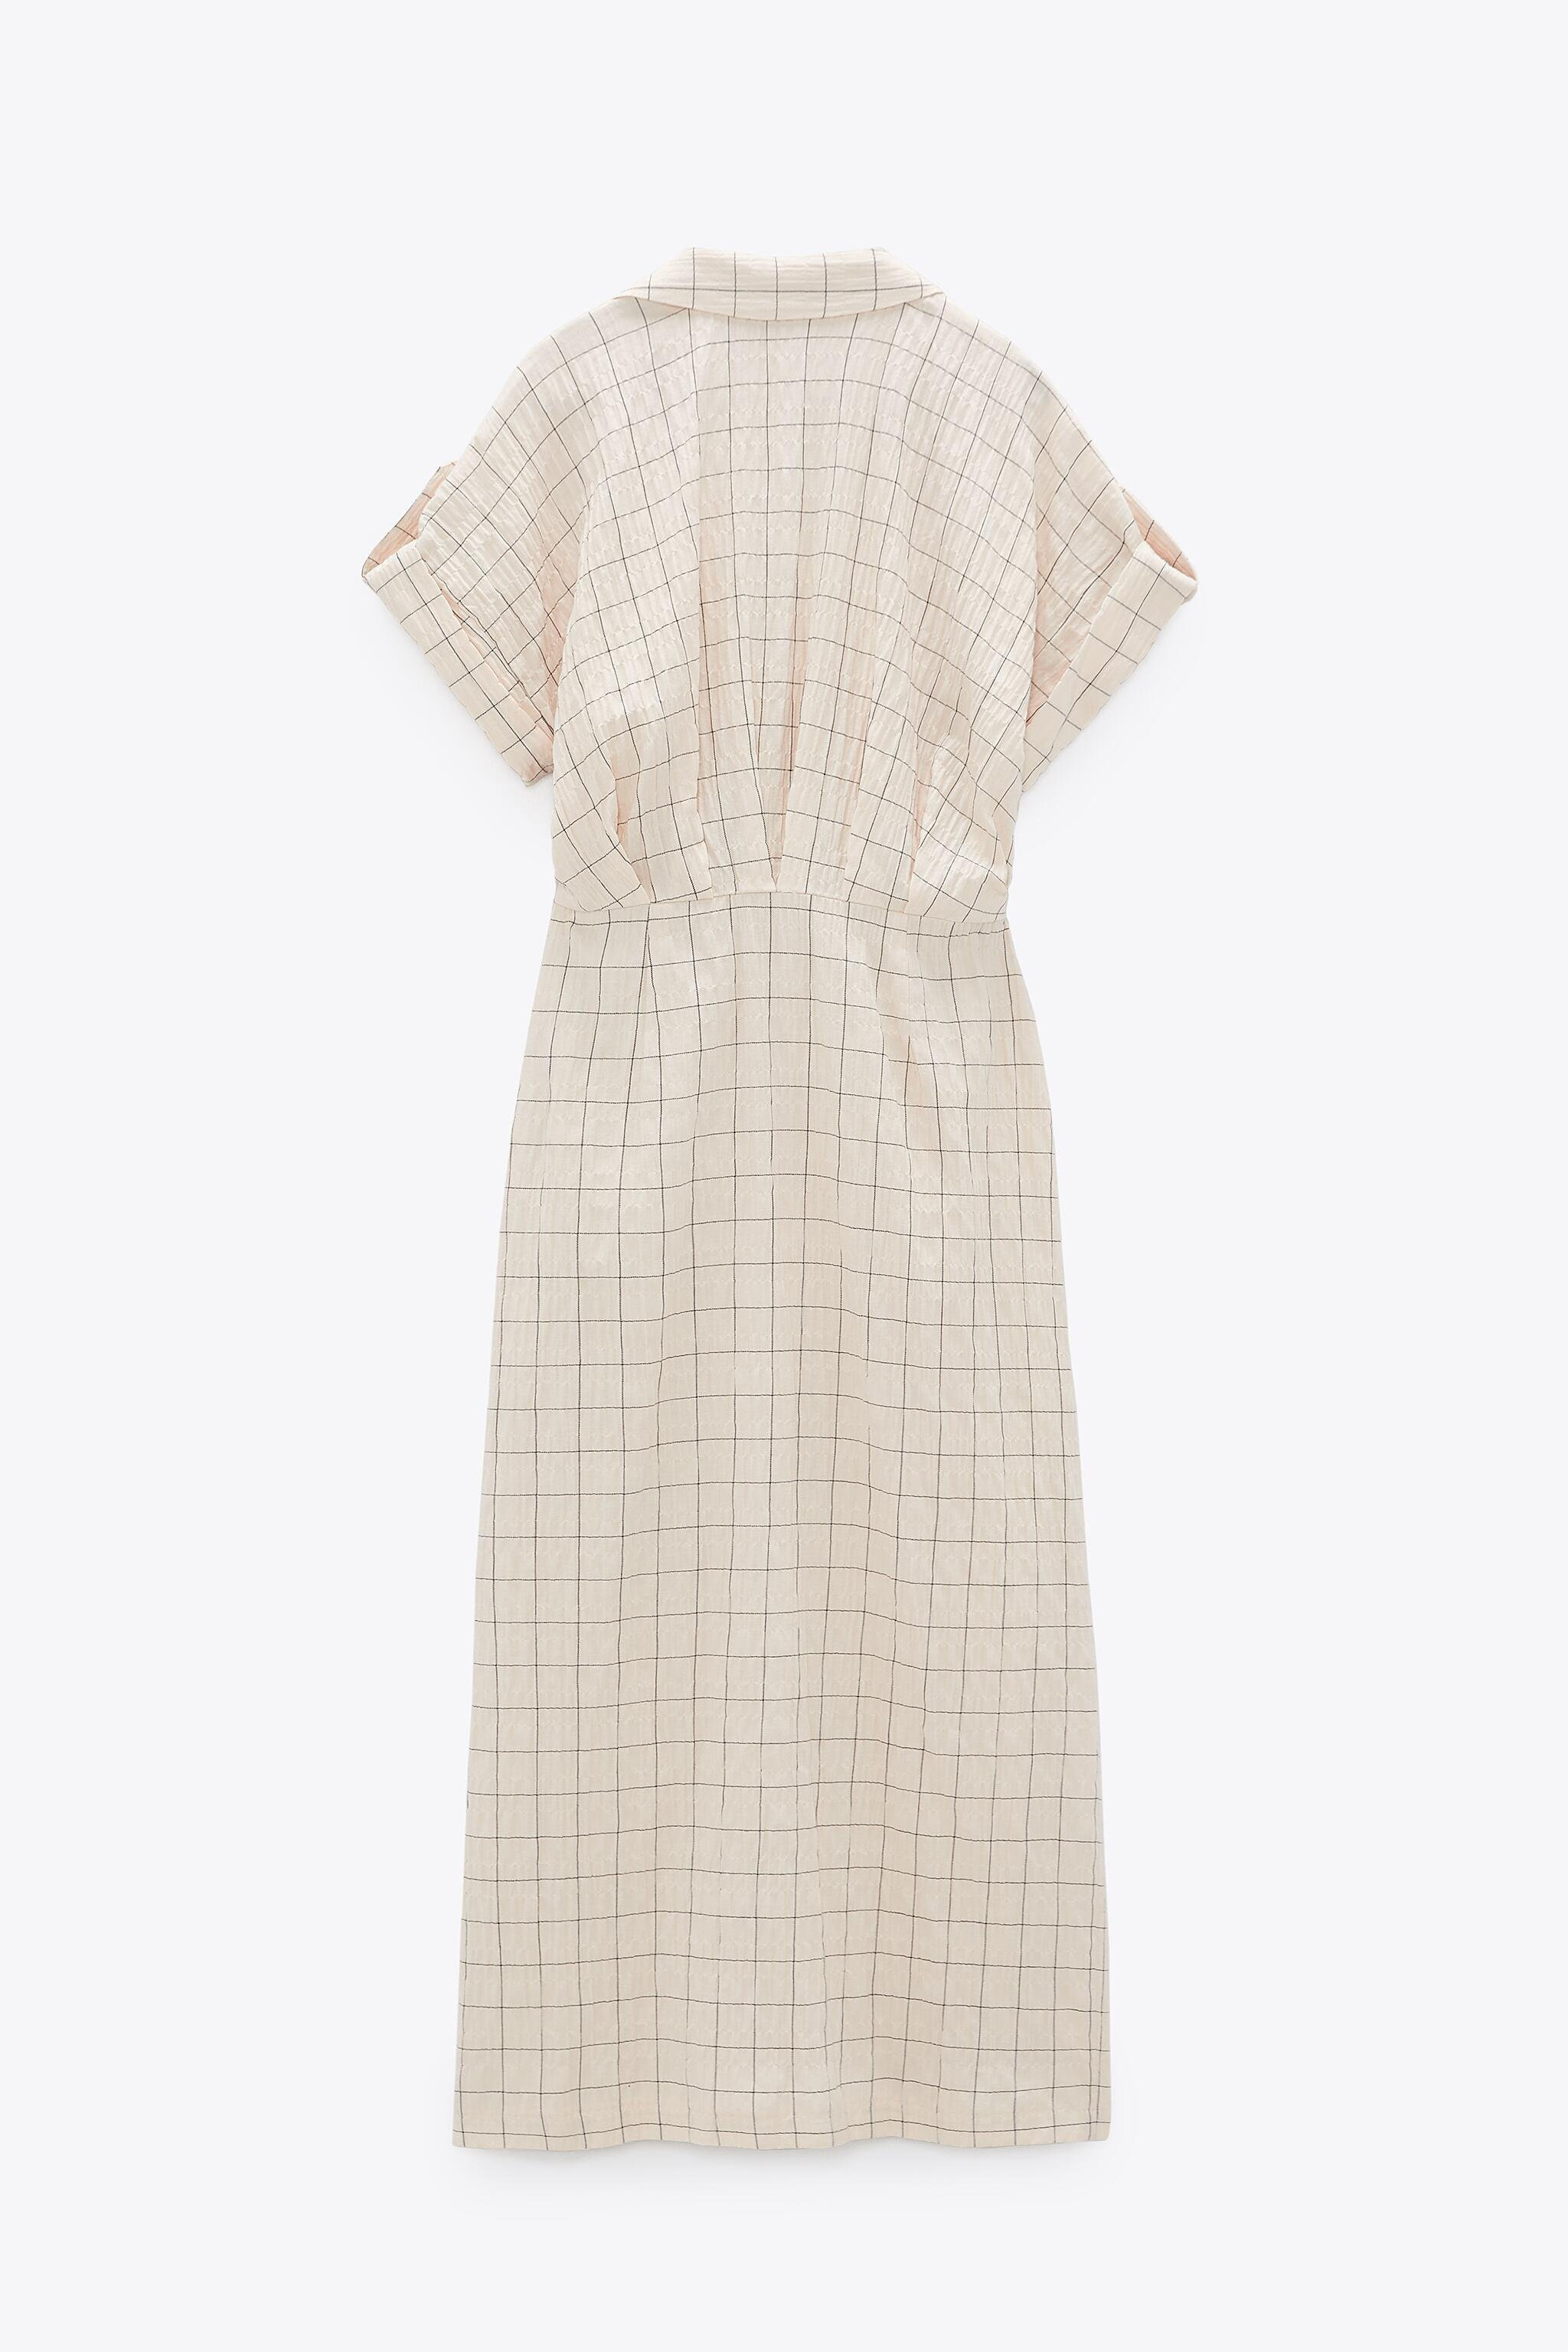 CHECKERED KNOTTED DRESS 2